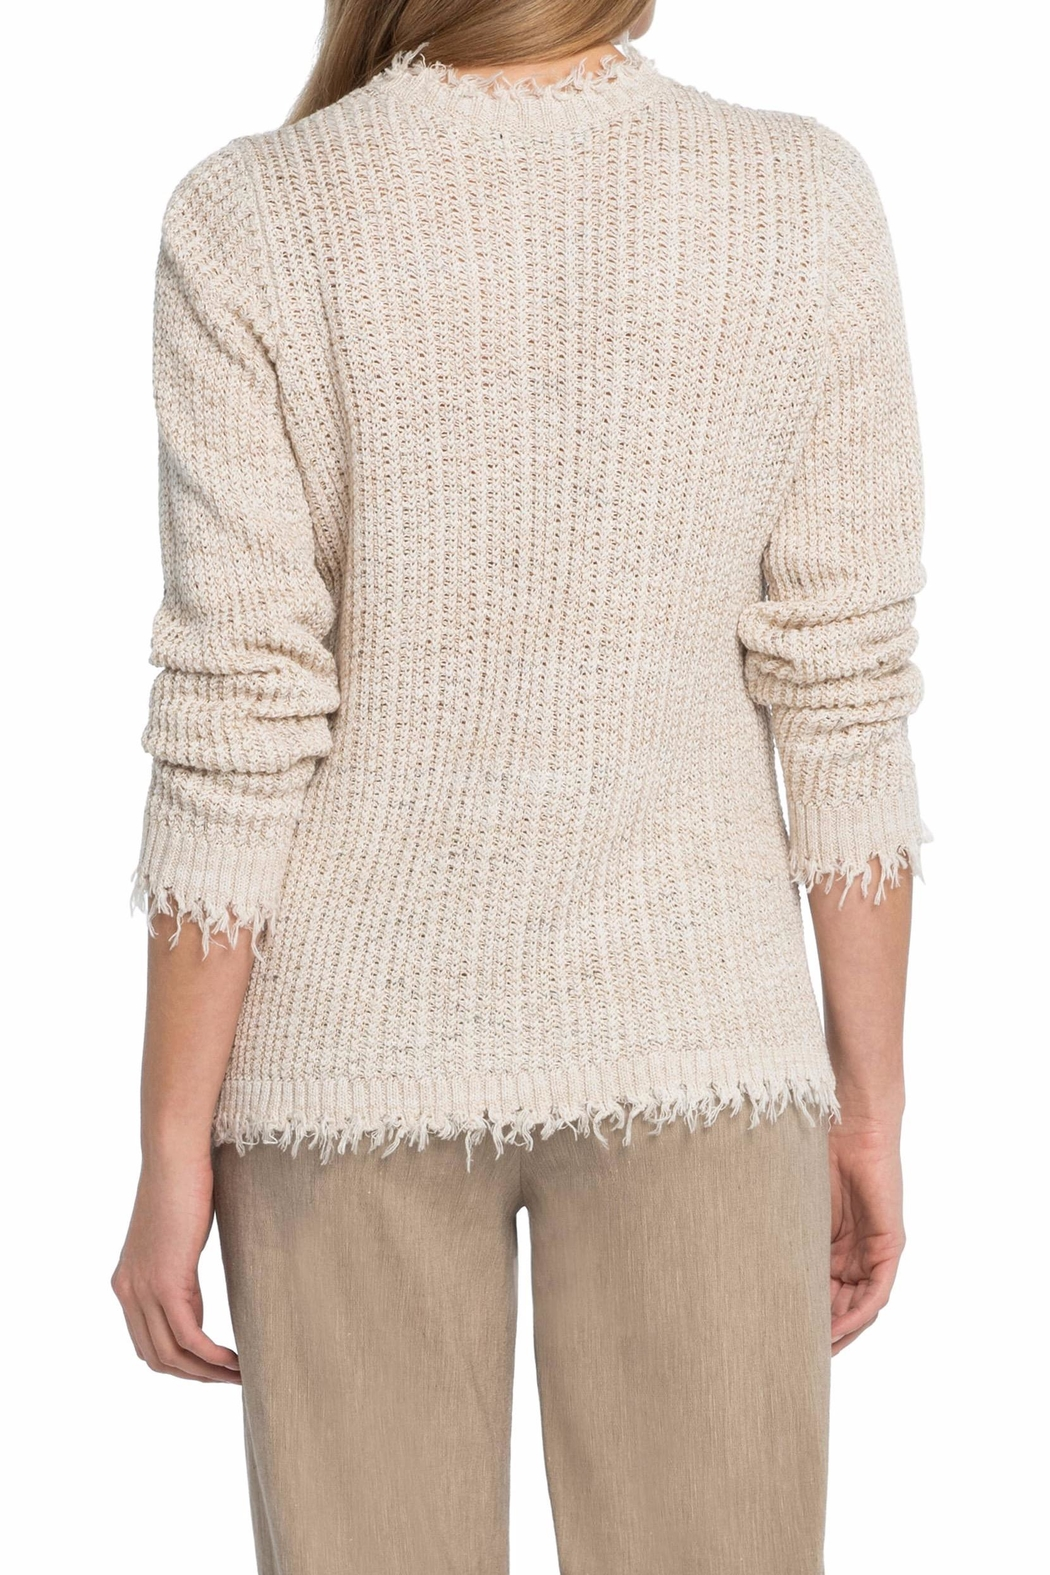 Nic + Zoe Golden Hour Sweater - Side Cropped Image